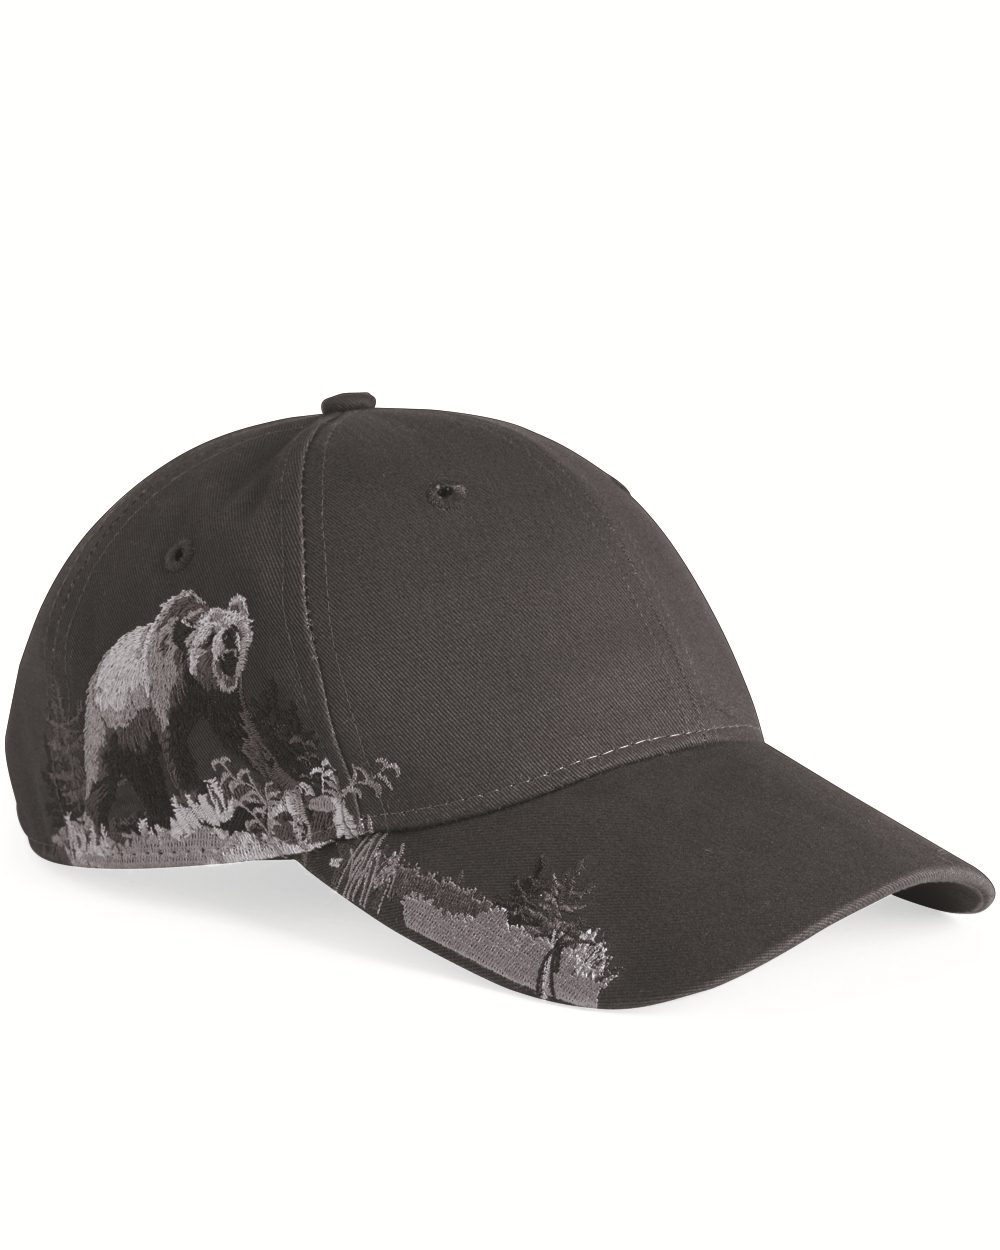 DRI DUCK Grizzly Bear Brushed Twill Cap - 3319